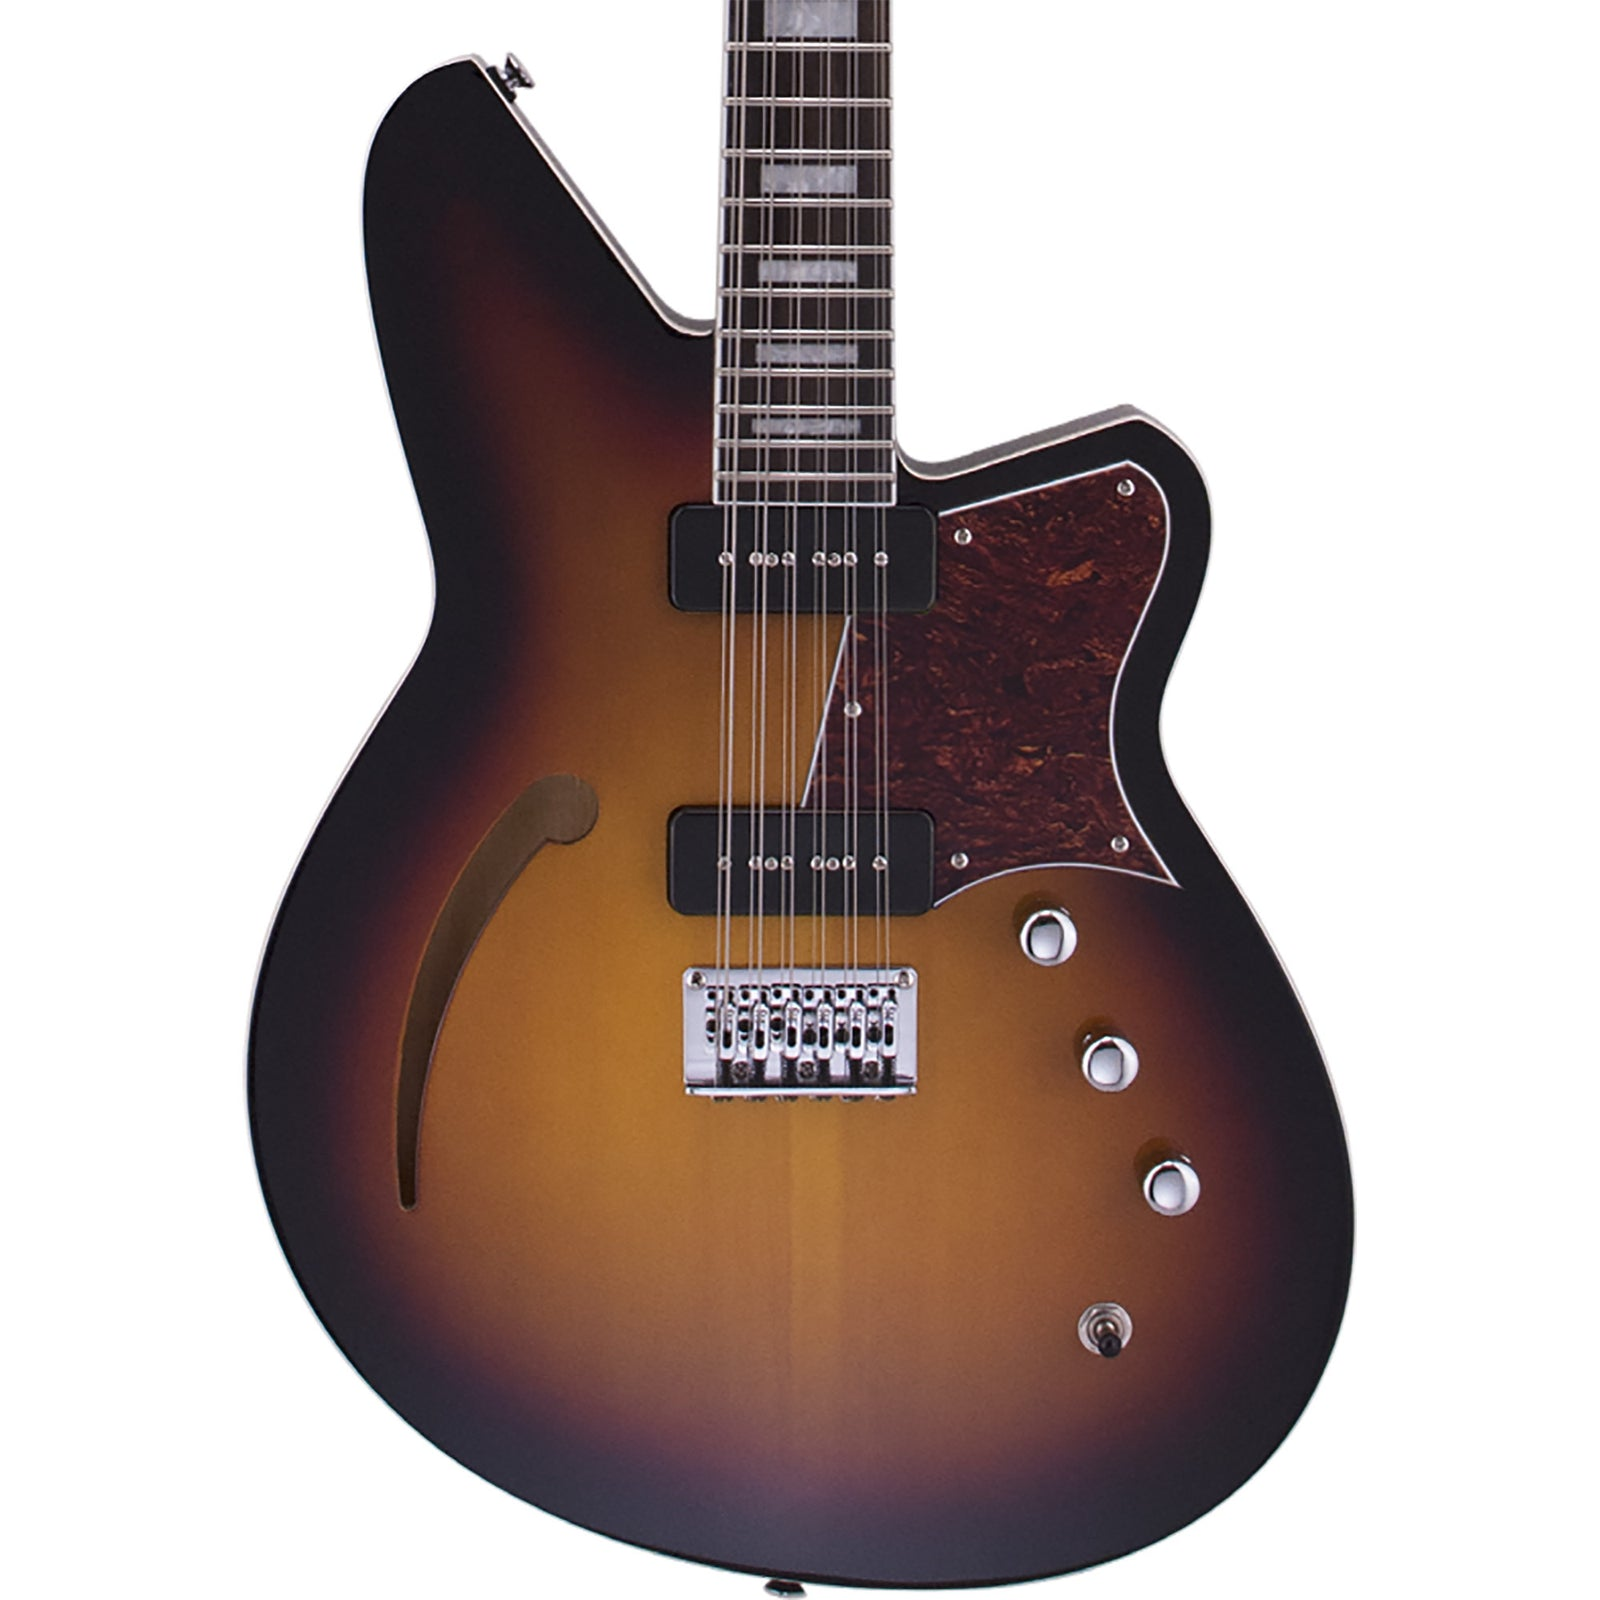 Reverend Airwave 12 String - 3 Tone Burst